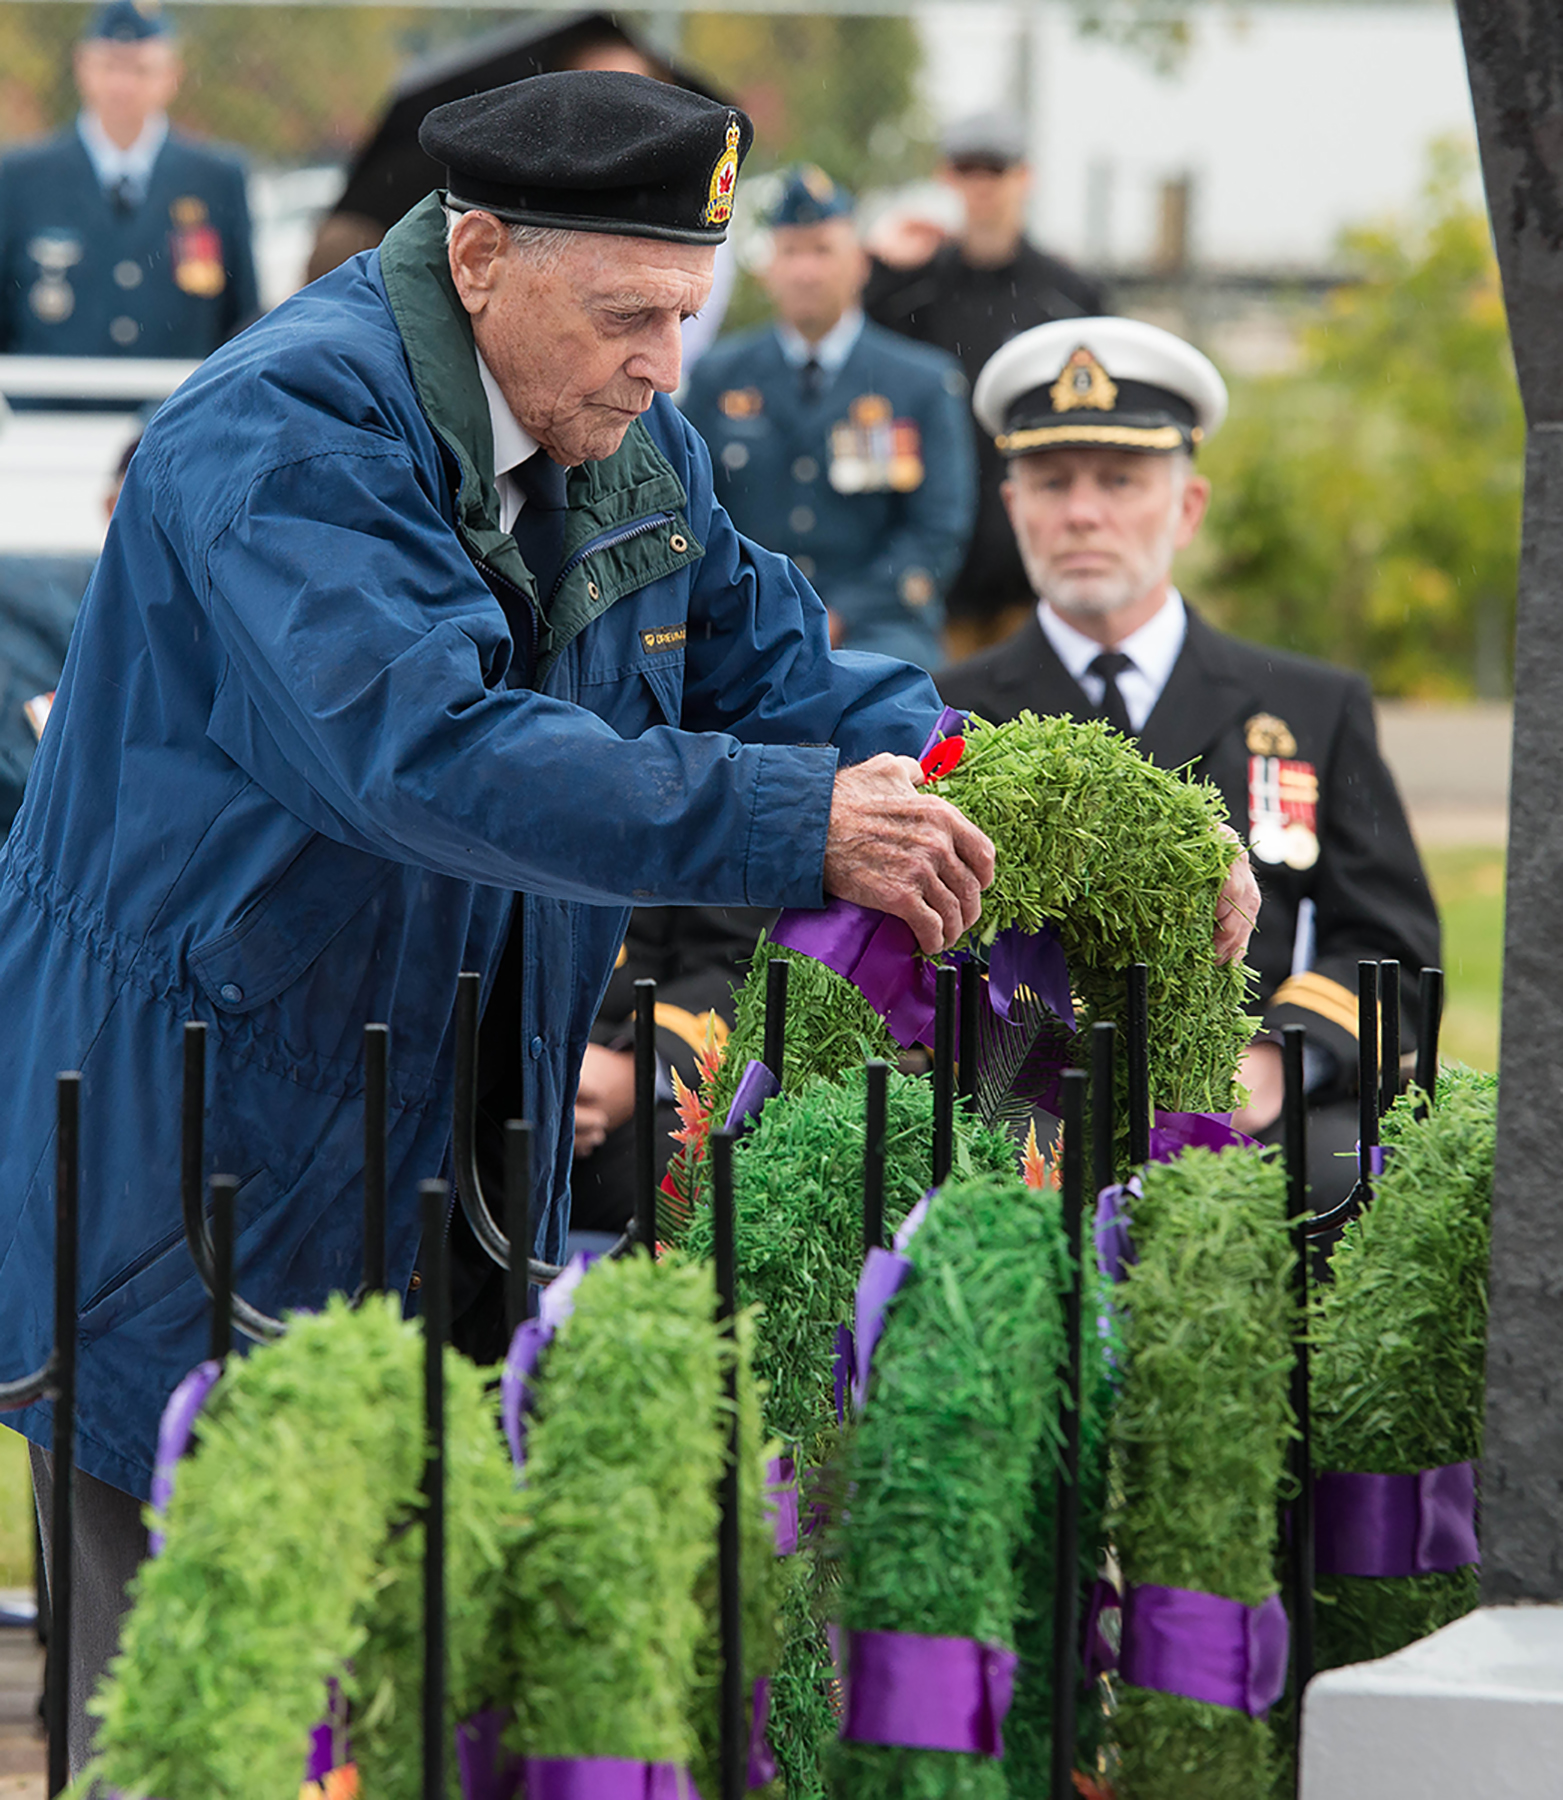 Jim McComb lays a wreath on behalf of the Wartime Pilots and Observers Association in the Garden of Memories in Winnipeg, Manitoba, during the 17 Wing Winnipeg, Manitoba, parade and ceremony held on September 18, 2016, to mark the 76th anniversary of the Battle of Britain. PHOTO: Sergeant Daren Kraus, FW2016-0005-35